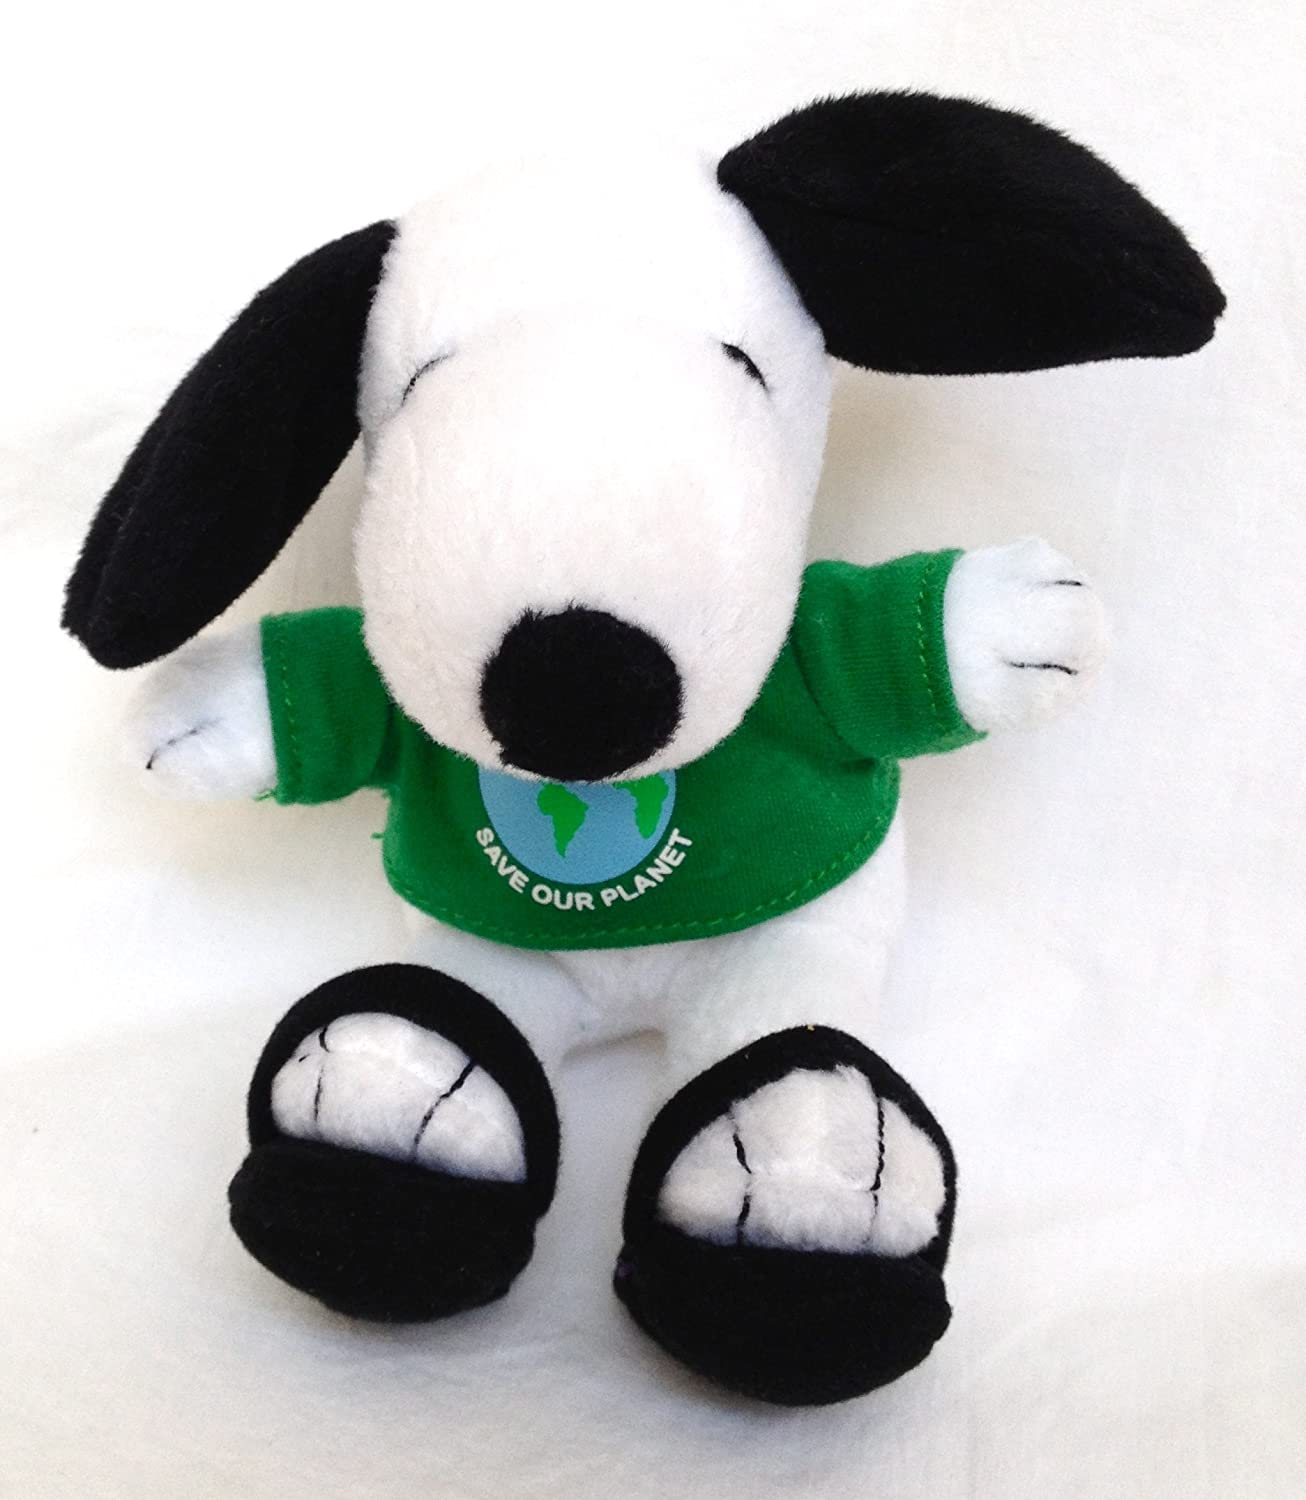 Metlife Peanuts Snoopy Plush  Save Our Earth Earth Earth - Earth Day by Peanuts 567d04